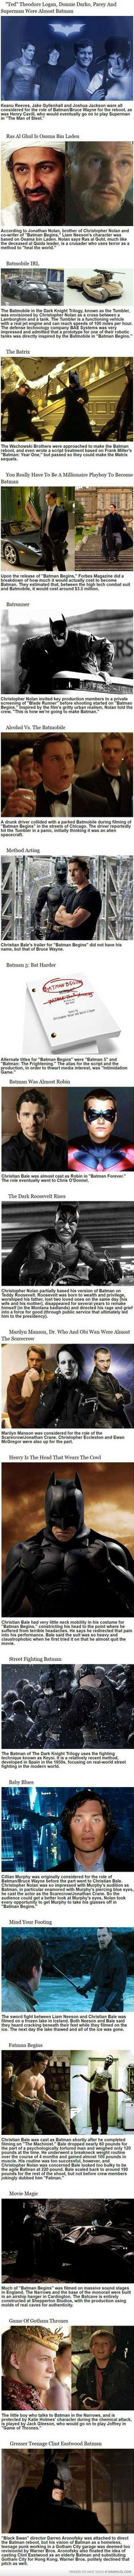 Interesting Facts About Batman